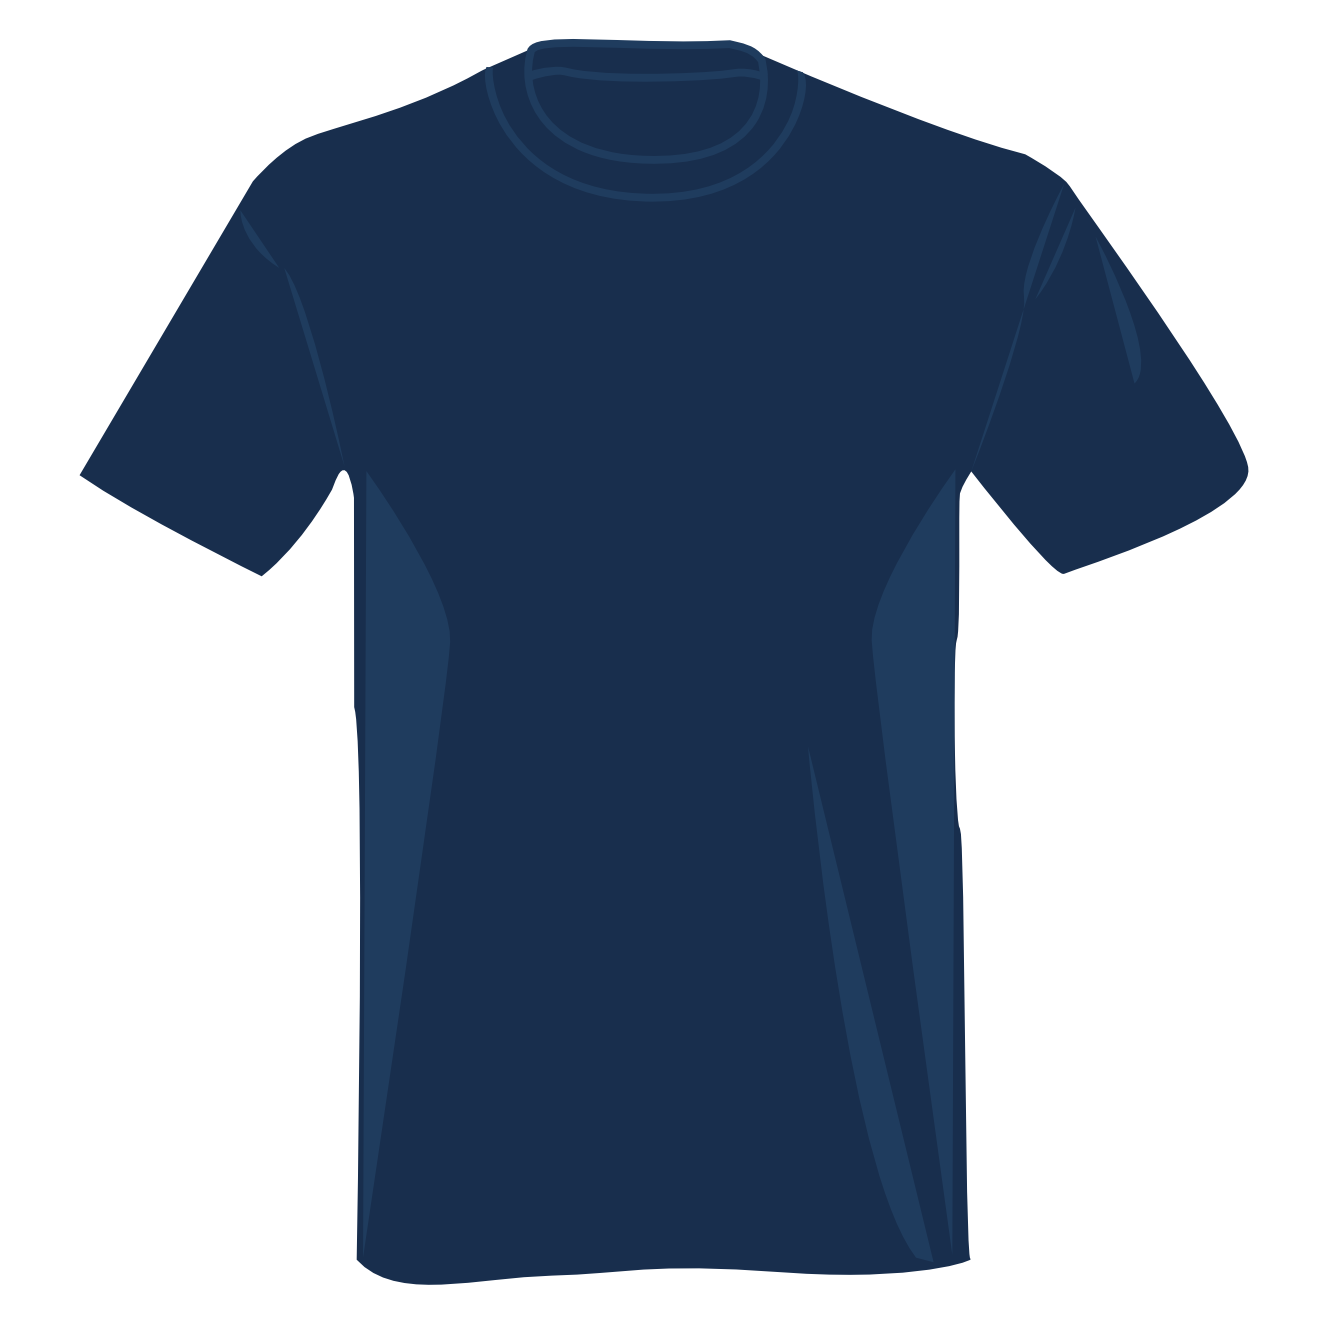 Clipart for tee shirts vector transparent Free Tshirt Cliparts, Download Free Clip Art, Free Clip Art on ... vector transparent